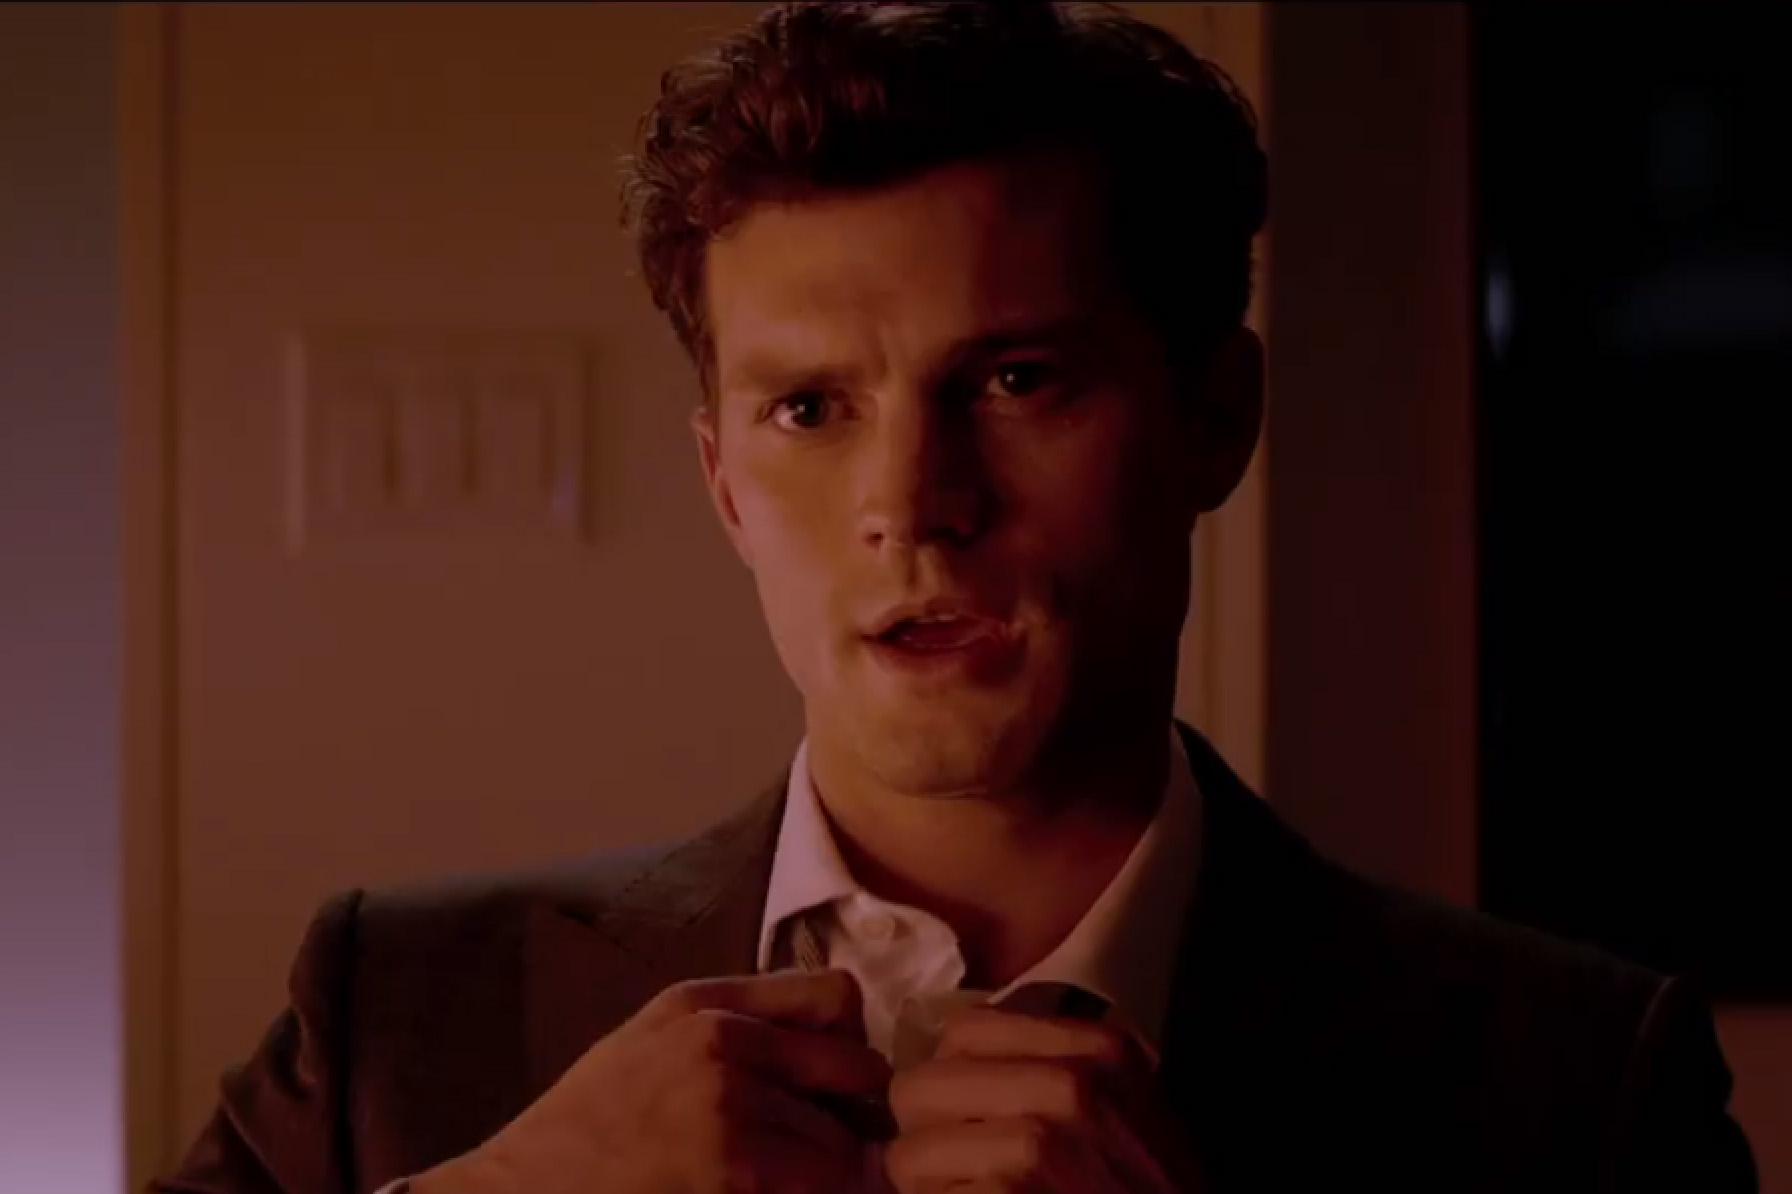 Video fifty shades of grey movie trailer for 50 shades of grey films